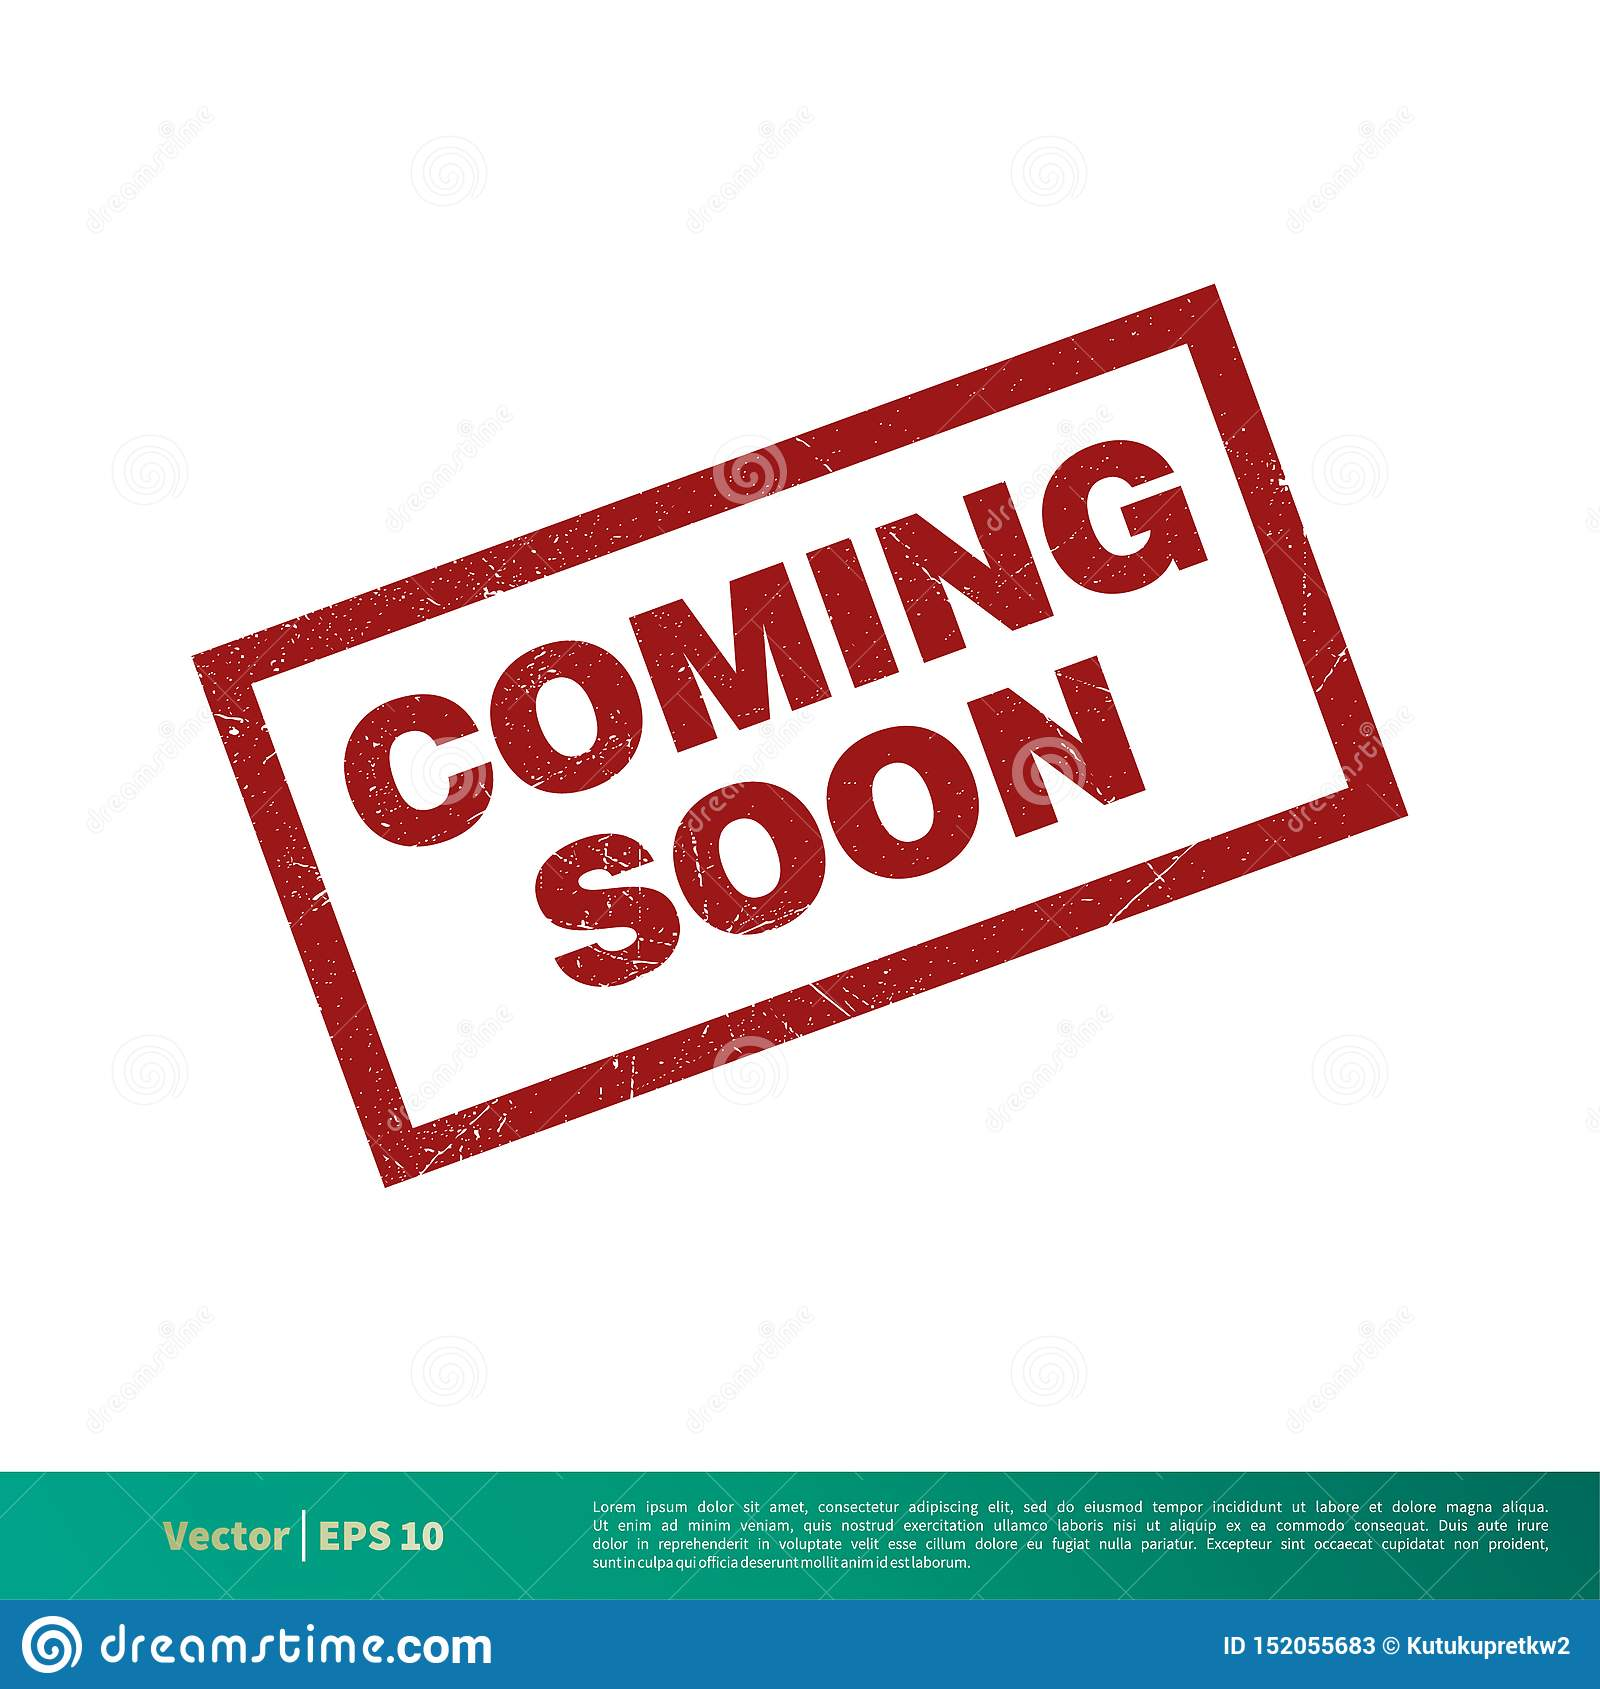 Coming Soon Red Grunge Banner Vector Template Illustration Design Vector Eps 10 Stock Vector Illustration Of Advertising Print 152055683